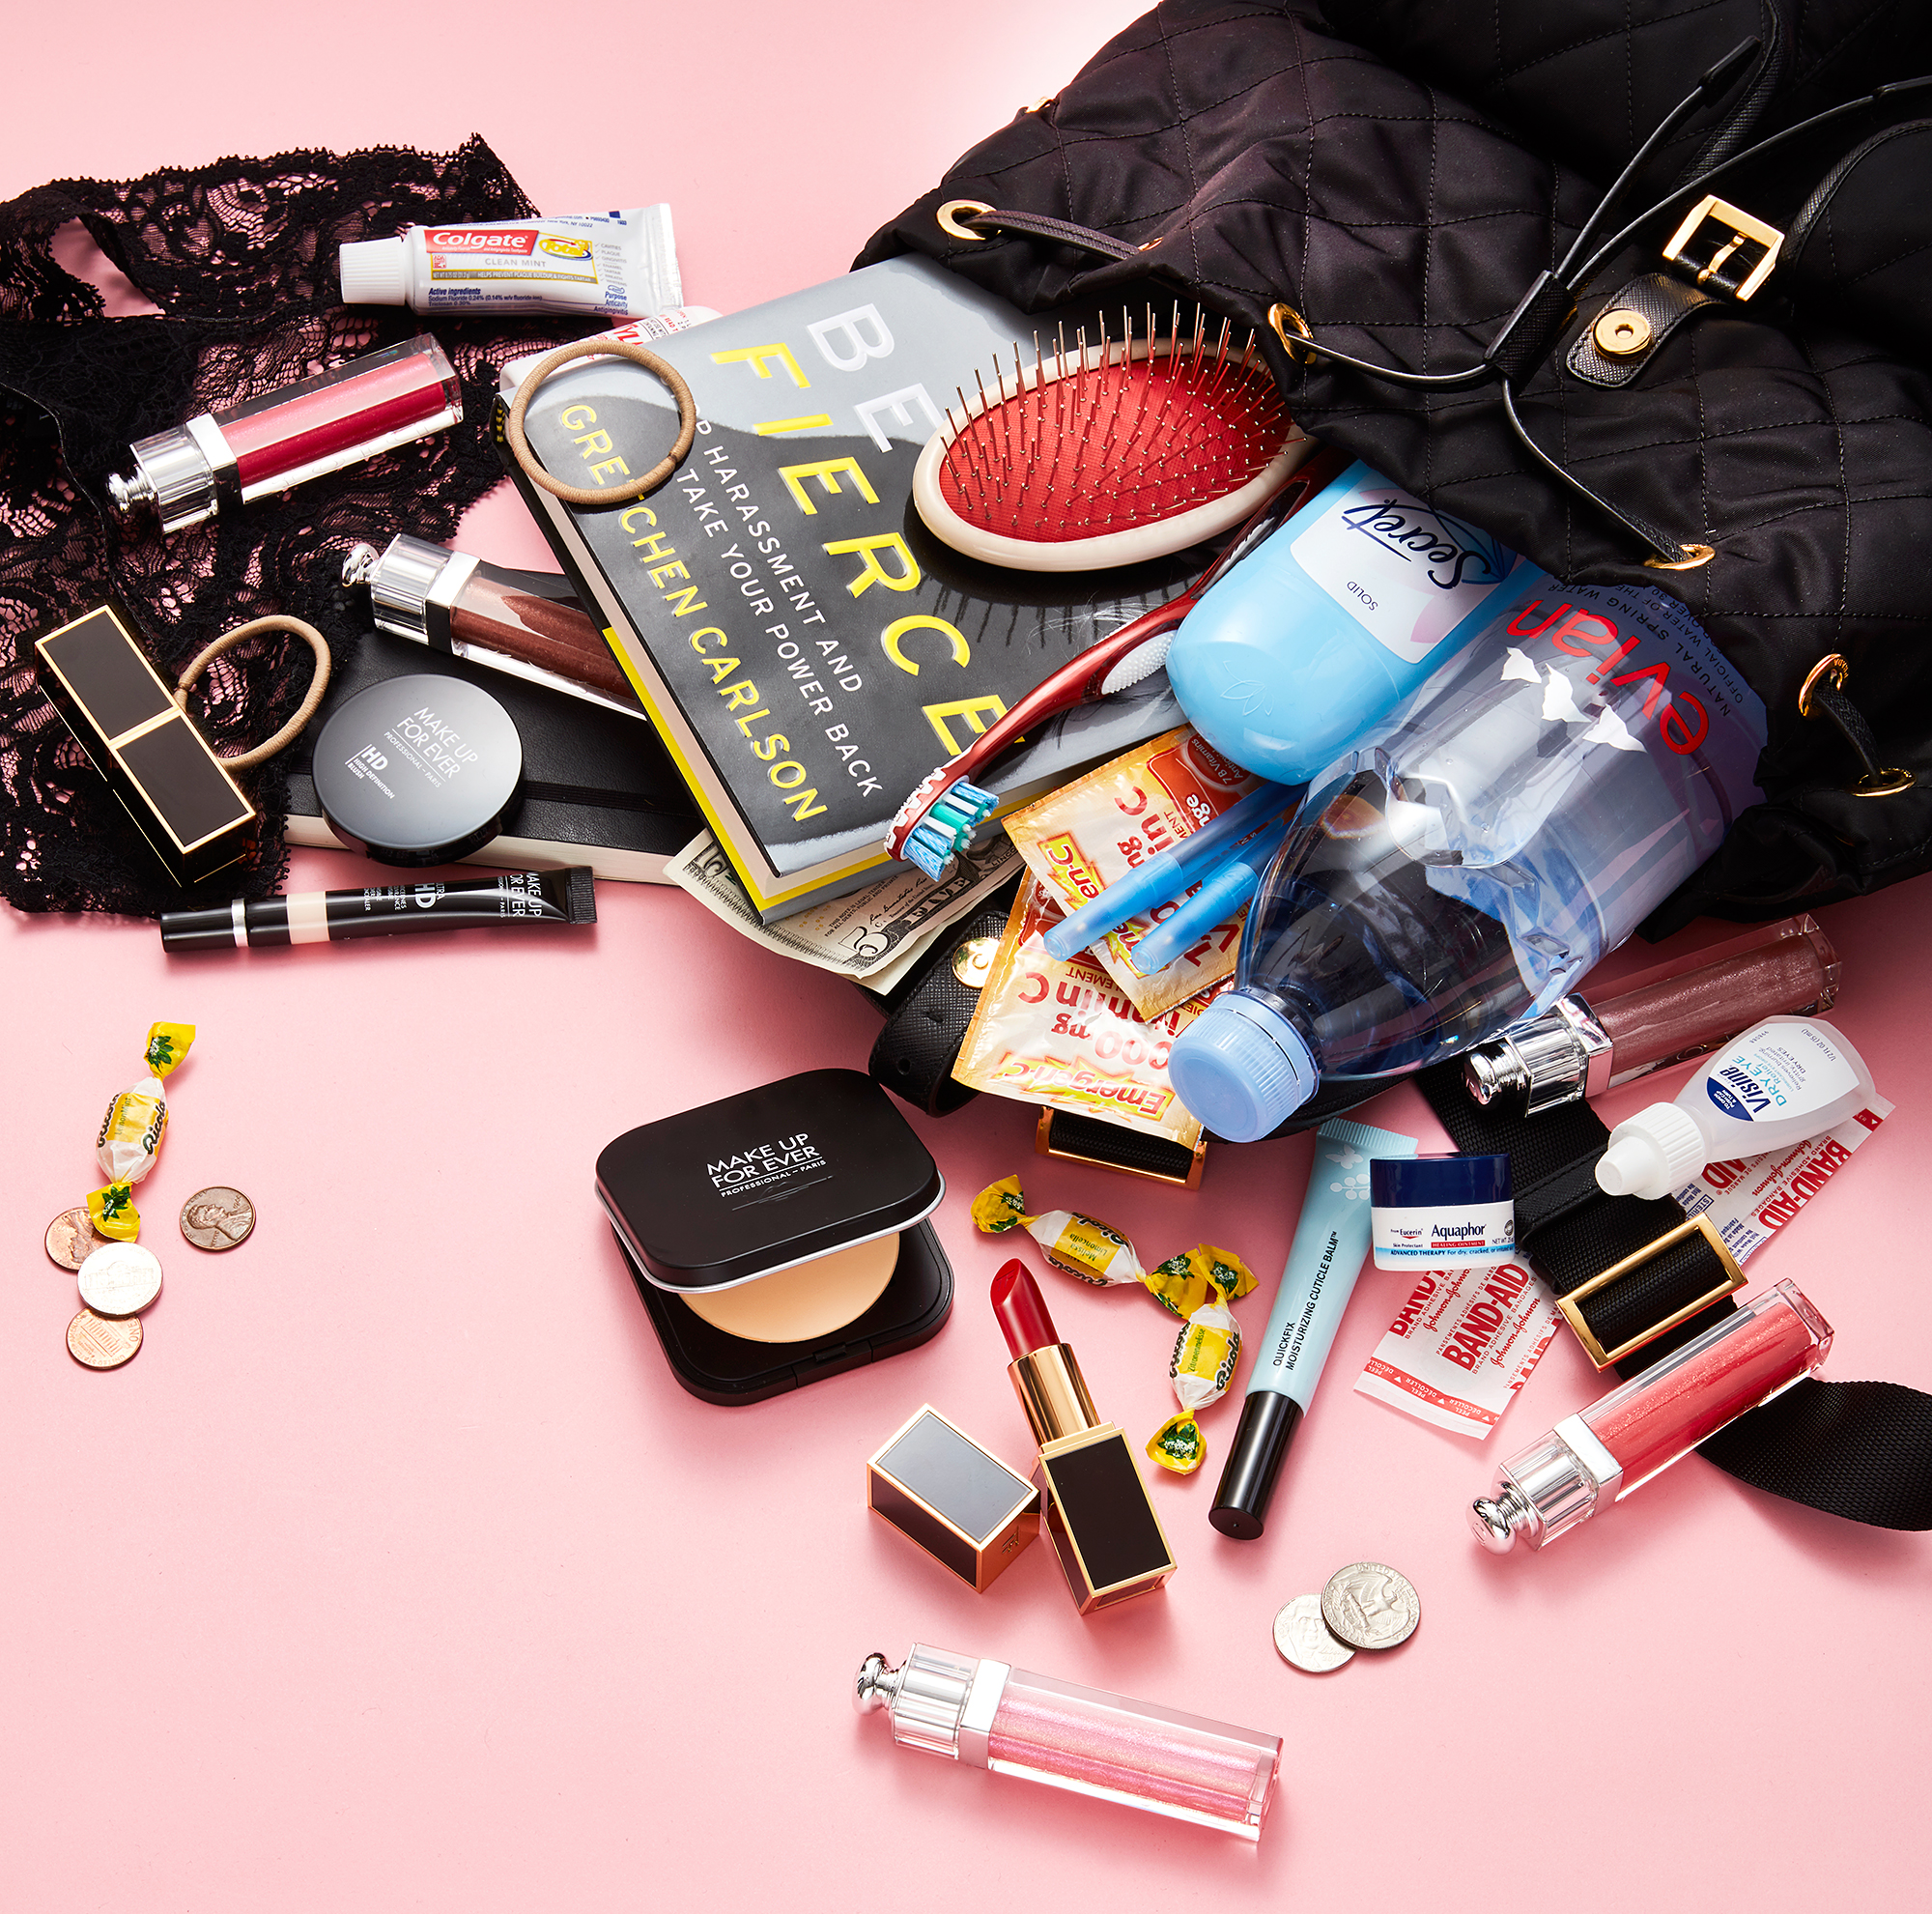 Erika Jayne What's In My Bag